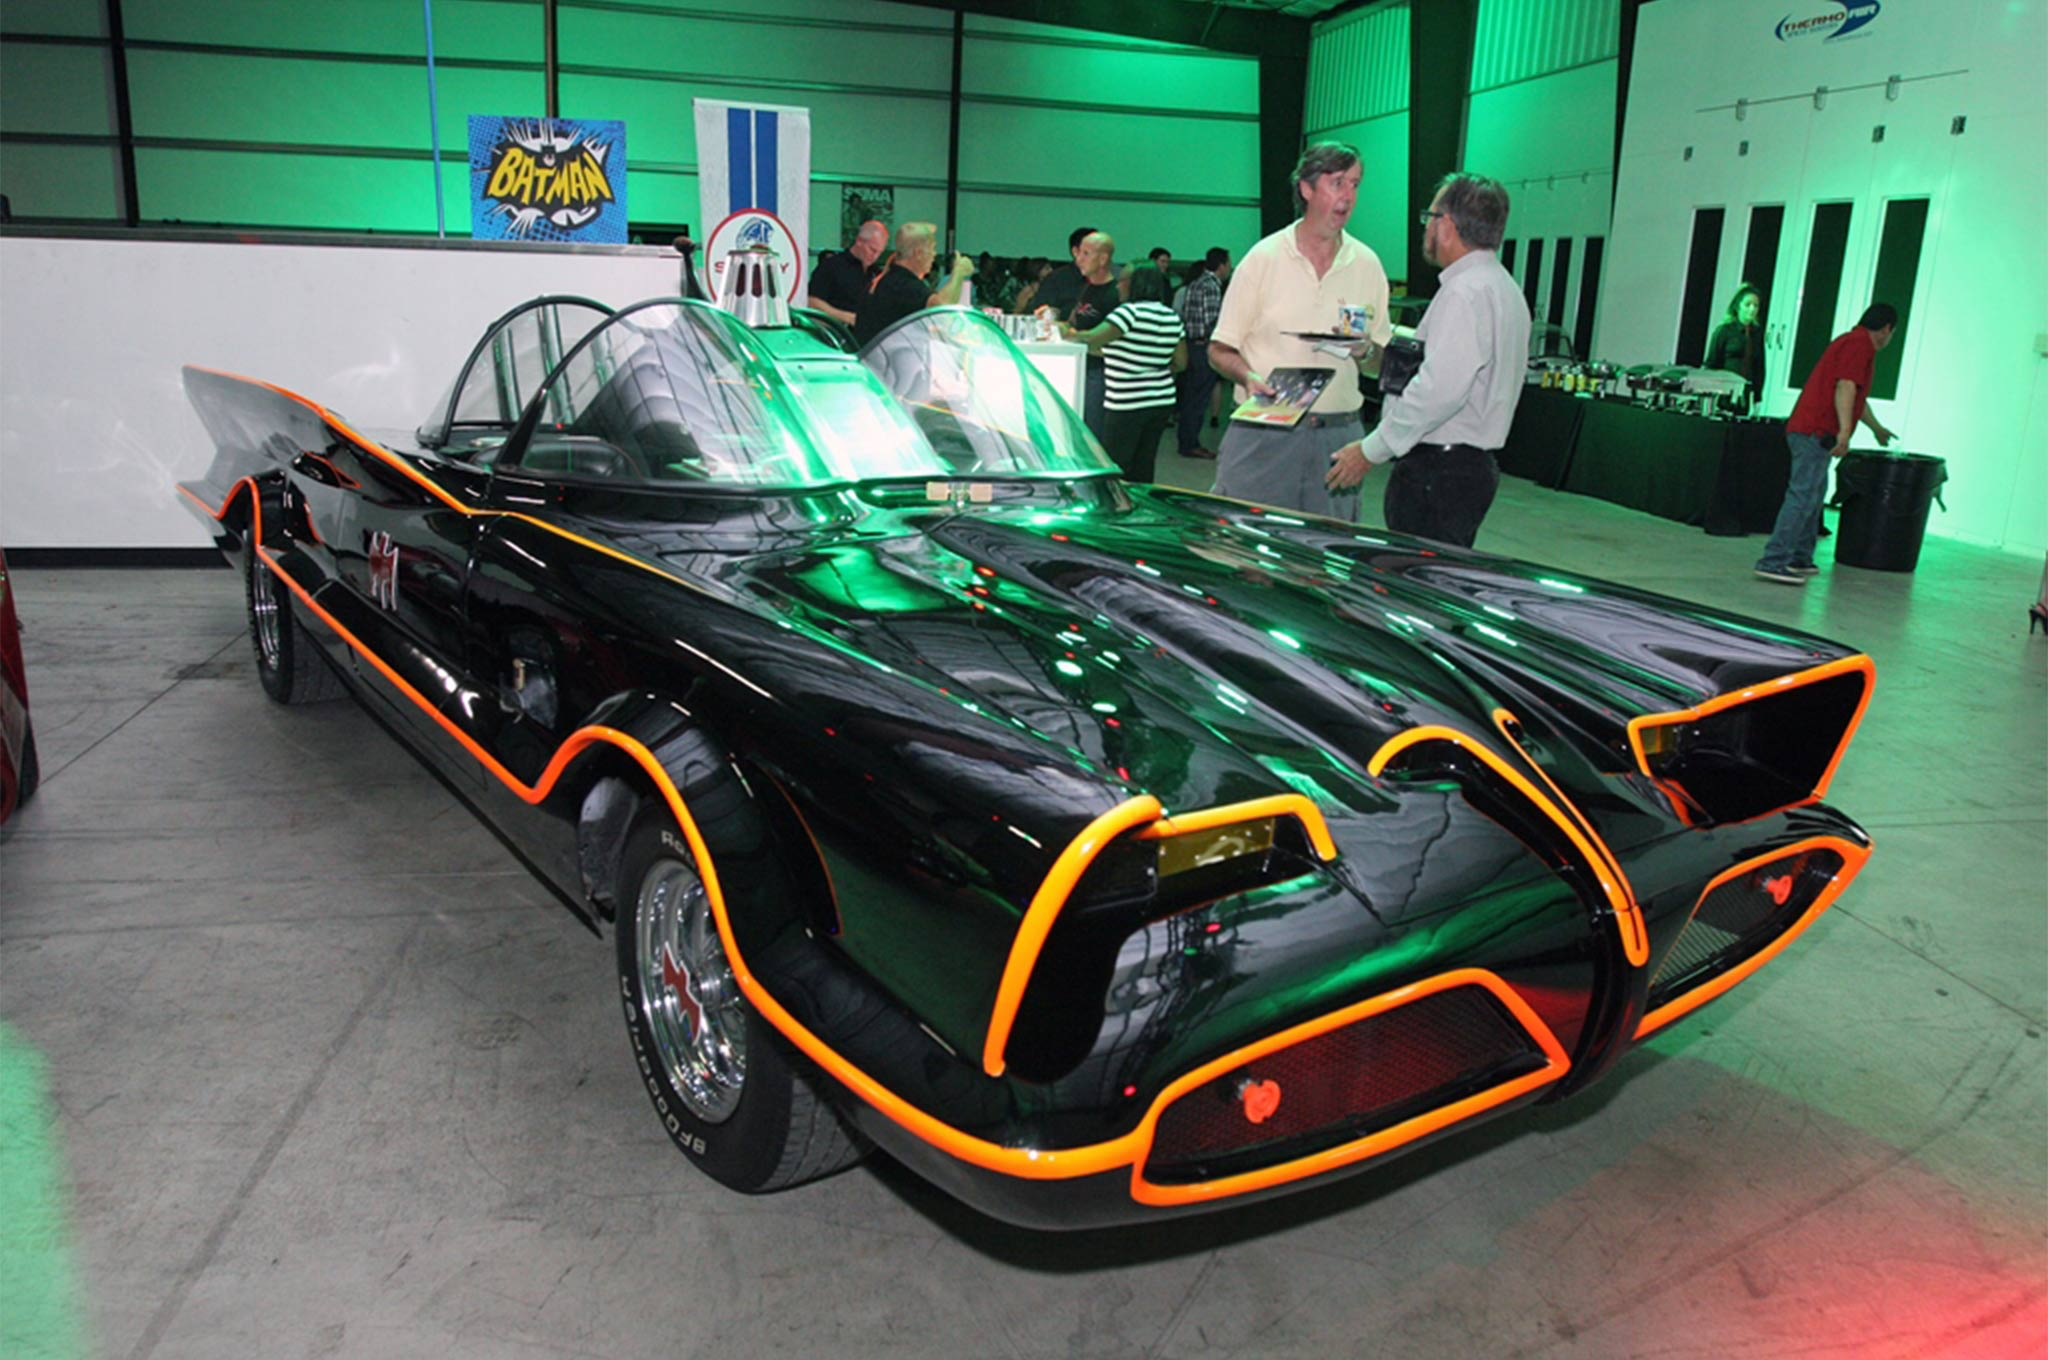 The best Batmobile ever, created by the late George Barris for the '60s TV series, was among many other cars on display at GAS.